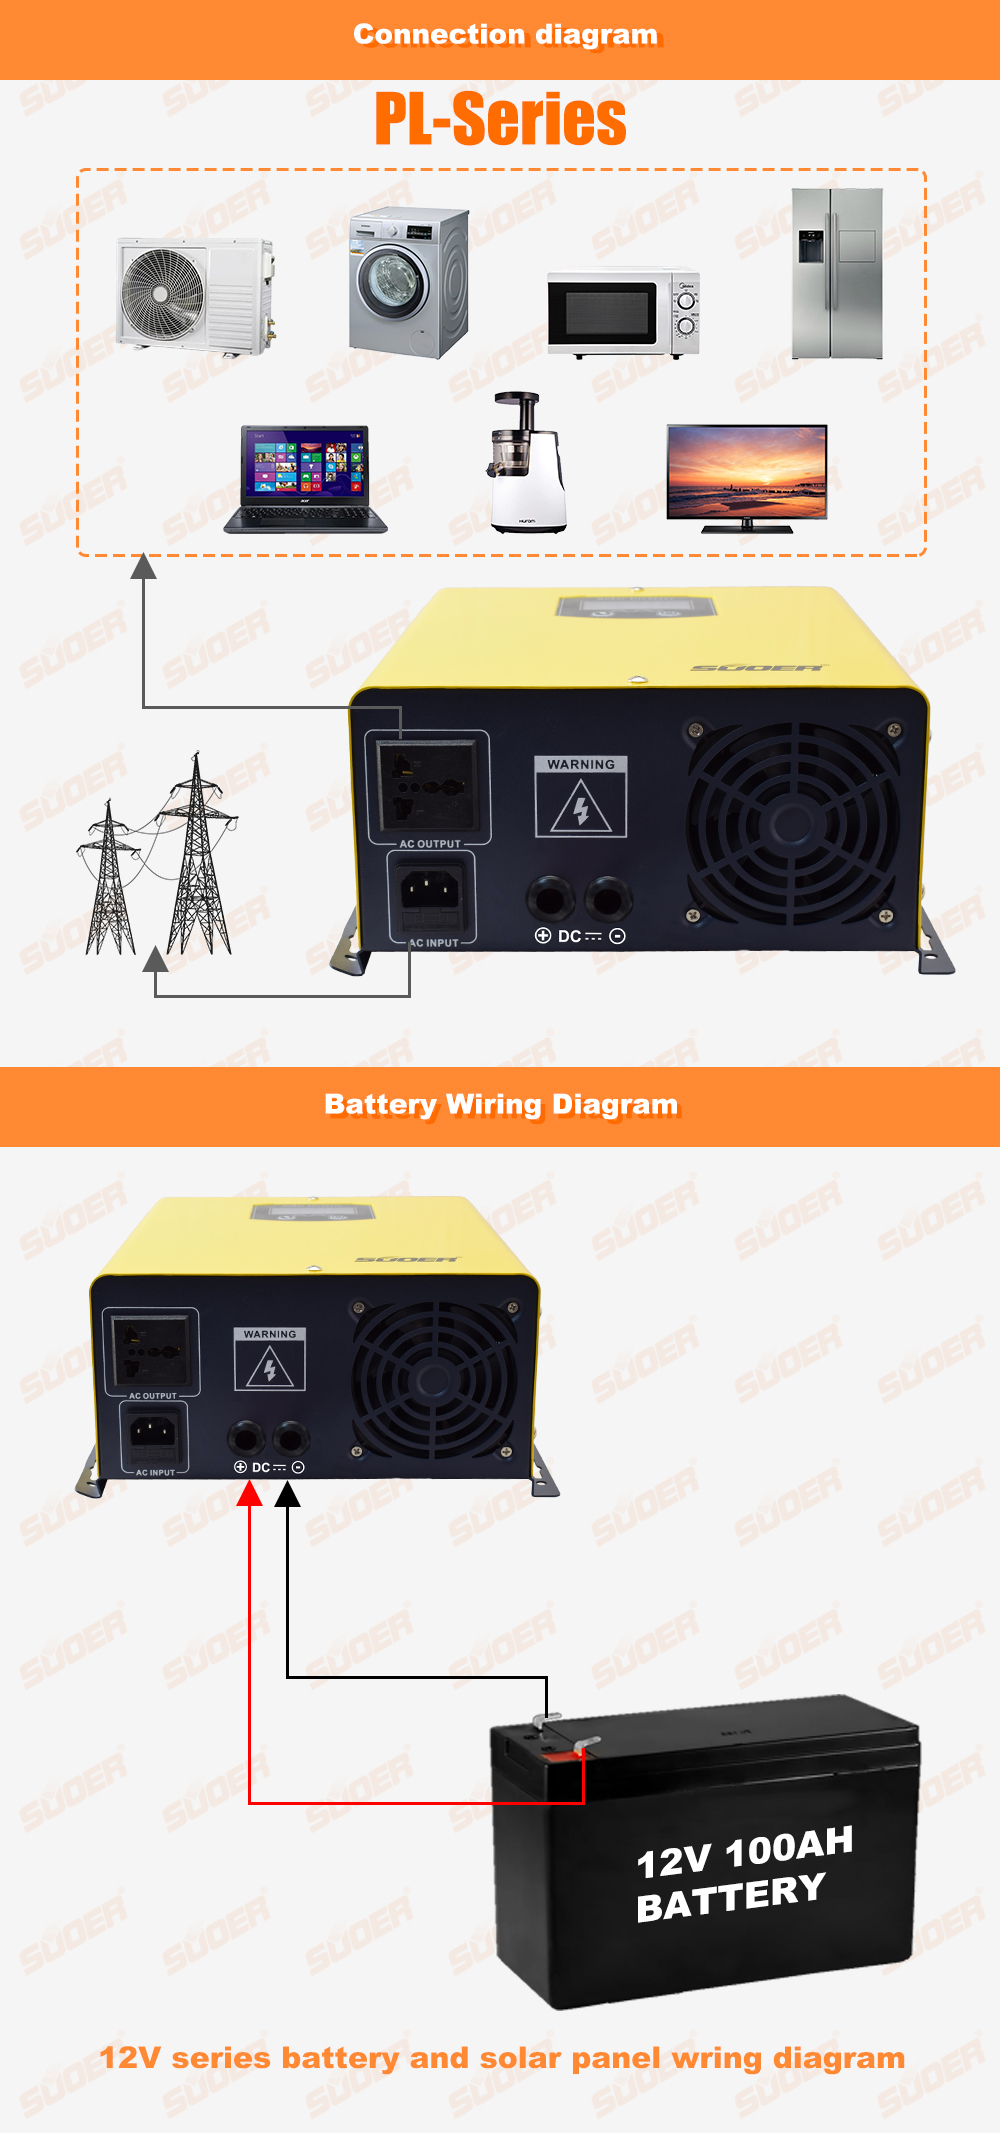 medium resolution of low frequency inverter pwm solar inverter based on transformer technology strong loading capacity used for all kinds of home office equipments solar power